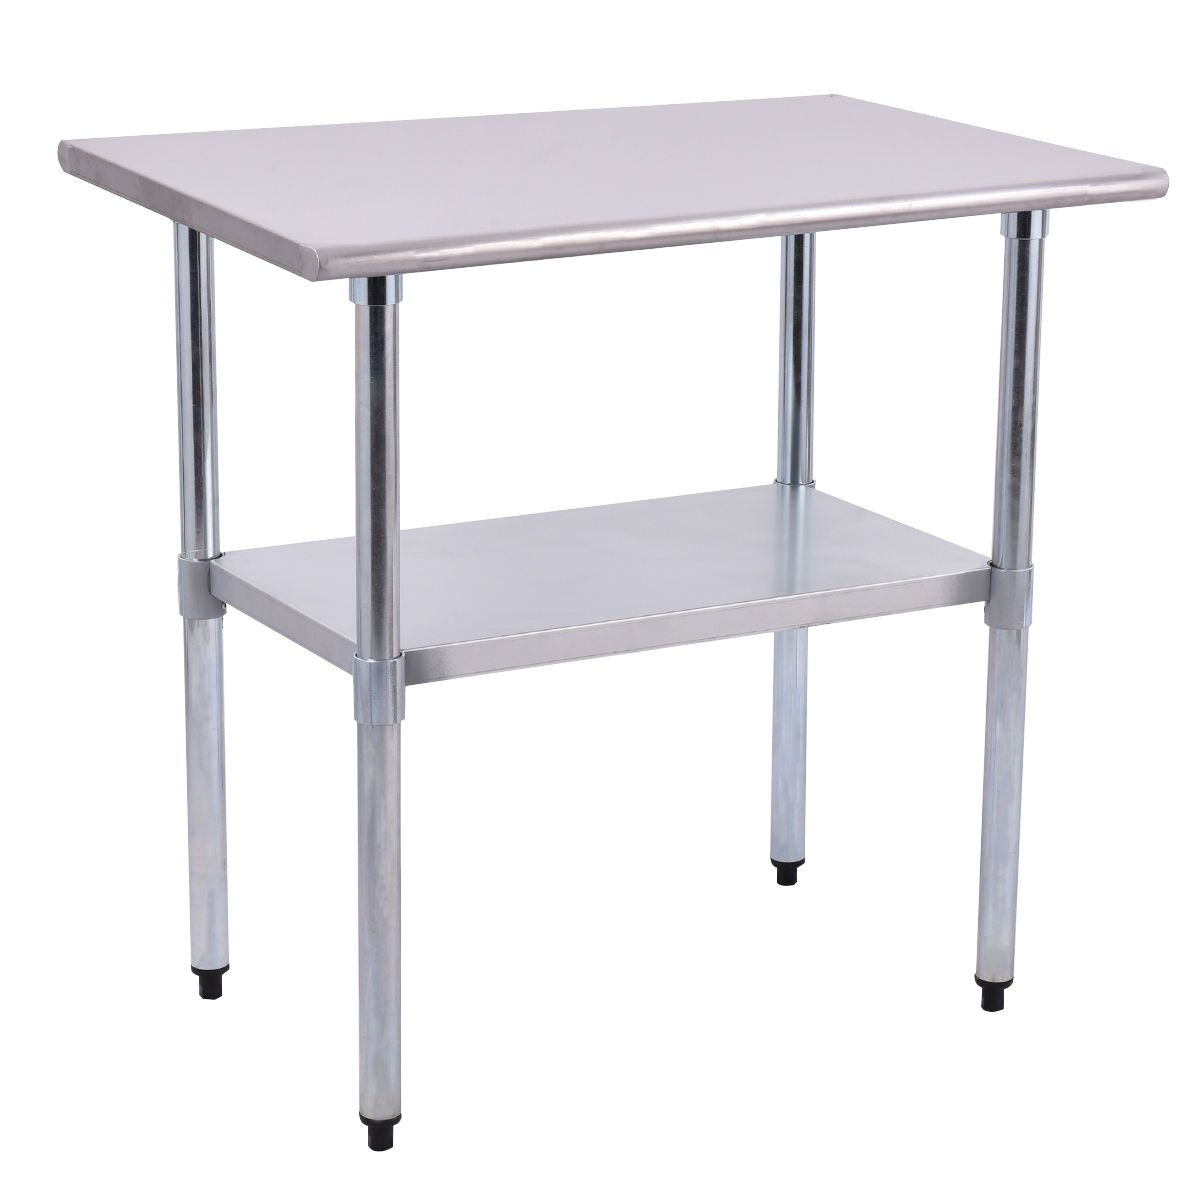 Stainless steel work prep table 24 inch x 36 inch easy to clean and superior working comfort commercial kitchen restaurant